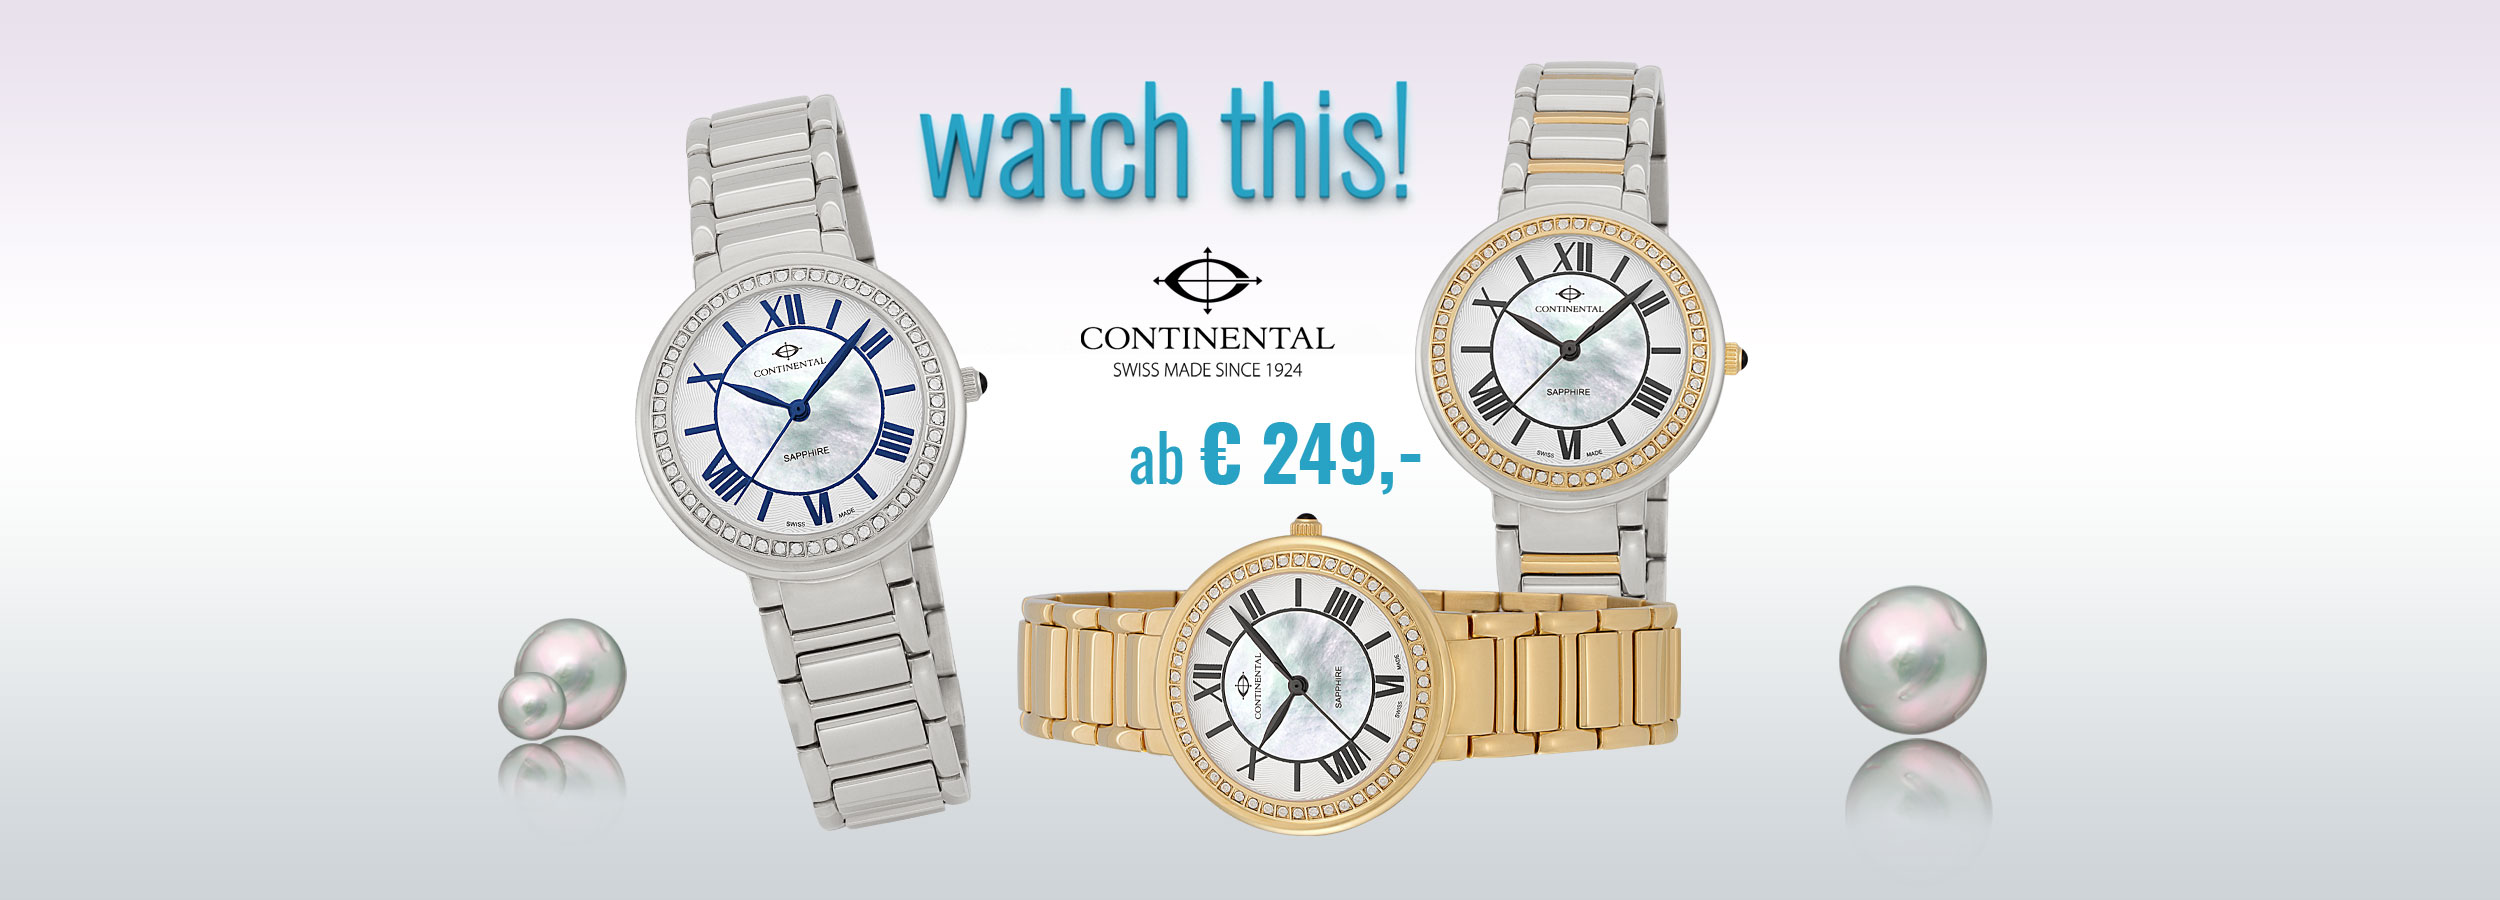 montres4sale Continental watch 16103